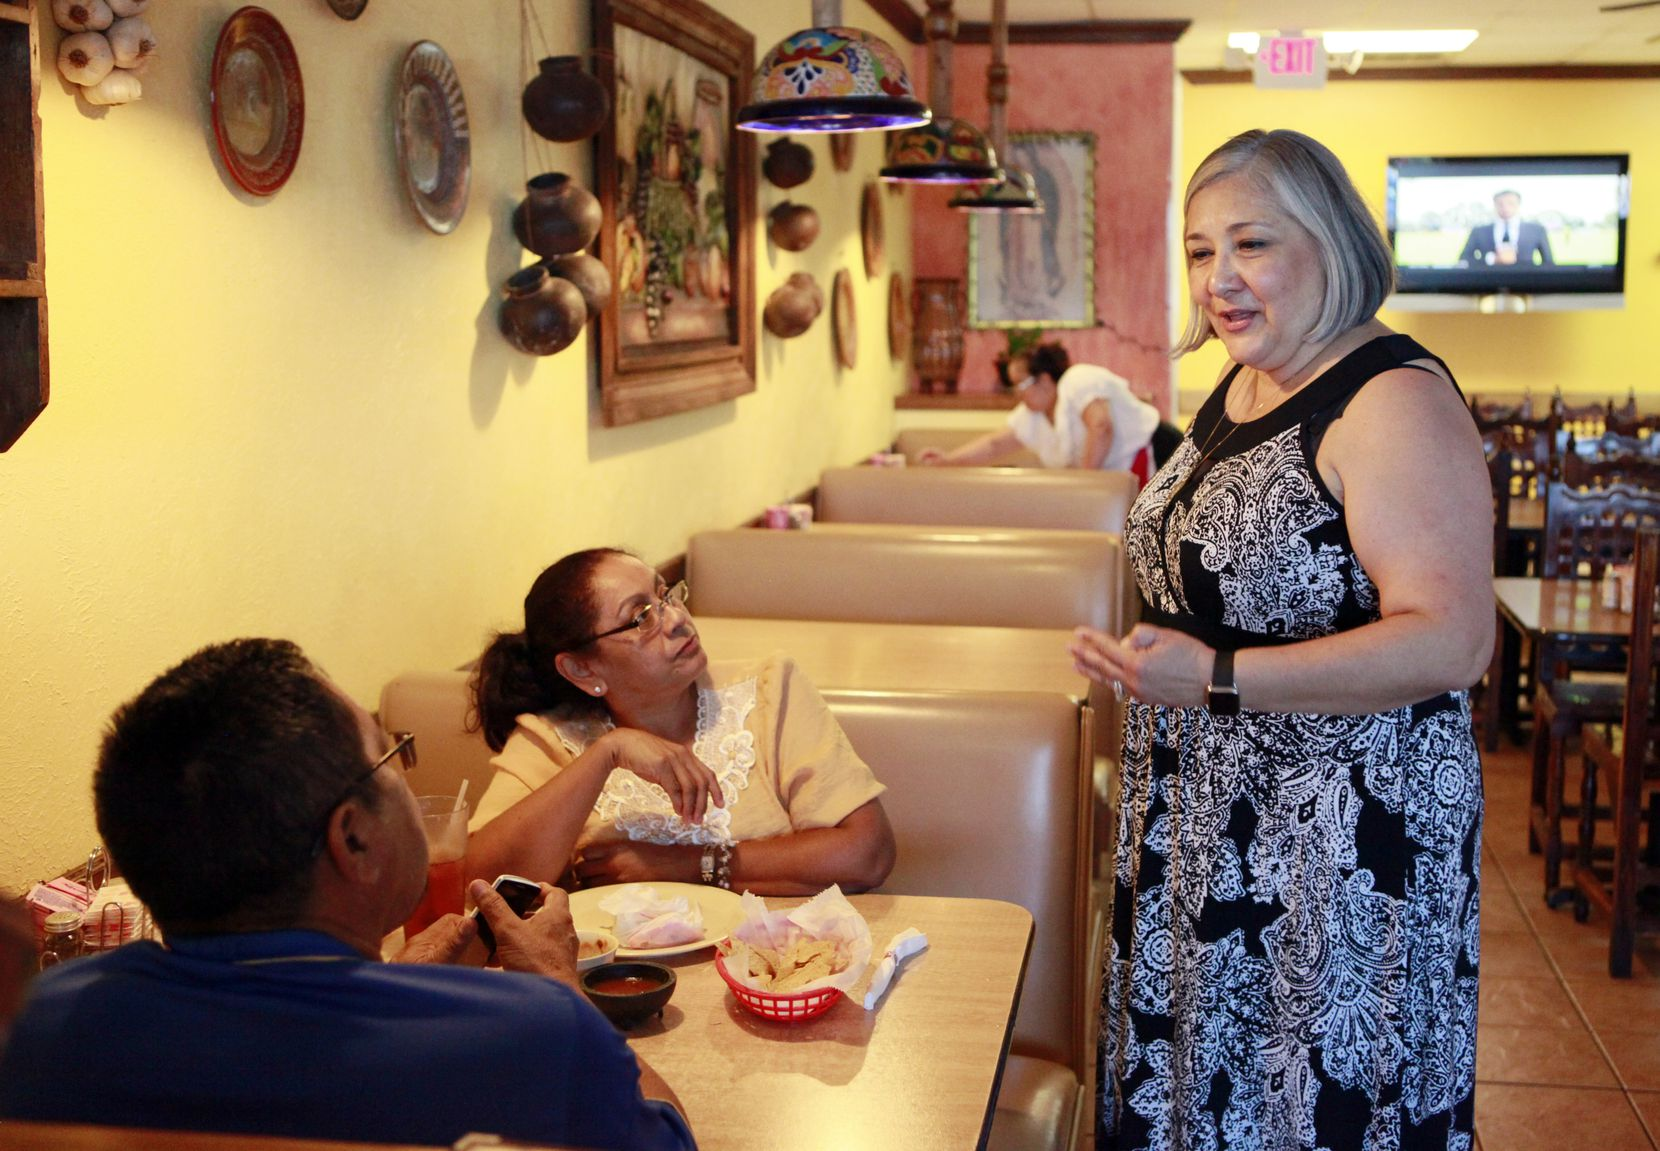 Elizabeth Villafranca, co-owner of Cuquitas Mexican restaurant in Farmers Branch, meets with customers Alejandra Osorio, left, and her husband Roman Osorio, on July 12, 2016.